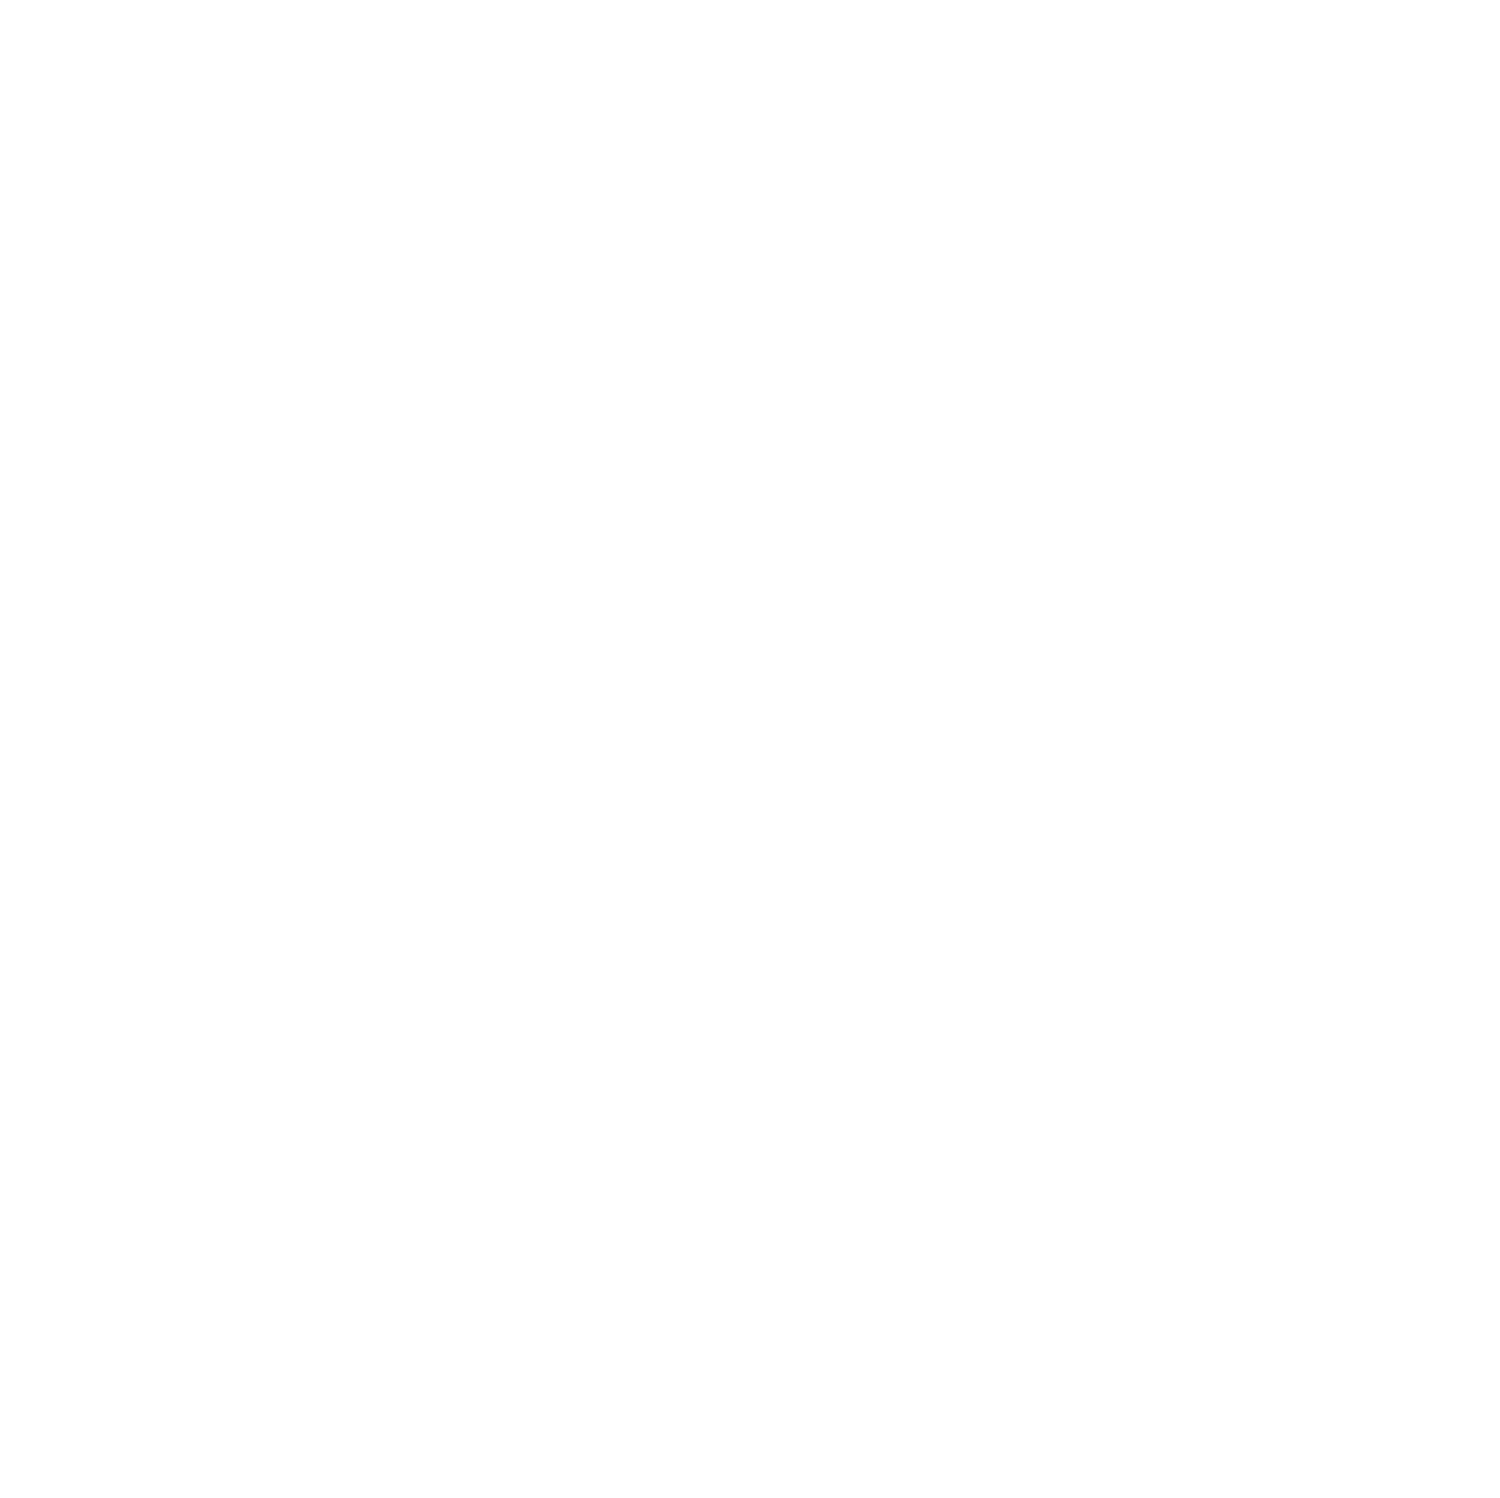 World of Dogs, LLC